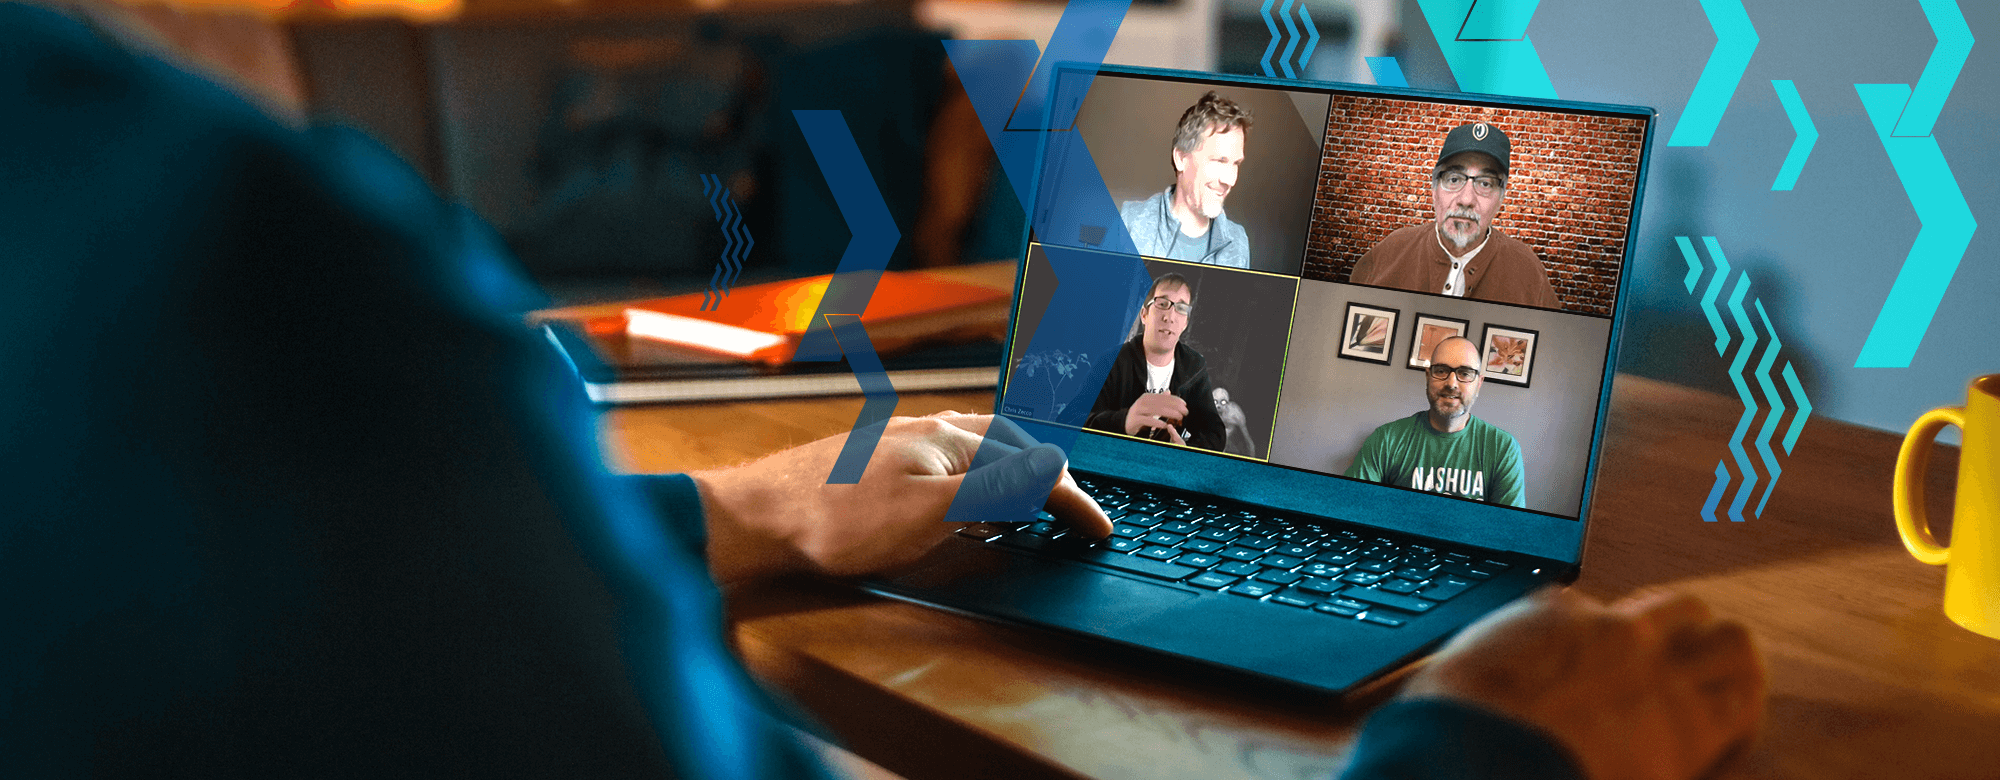 Have video meetings changed the way your teams communicate and behave?